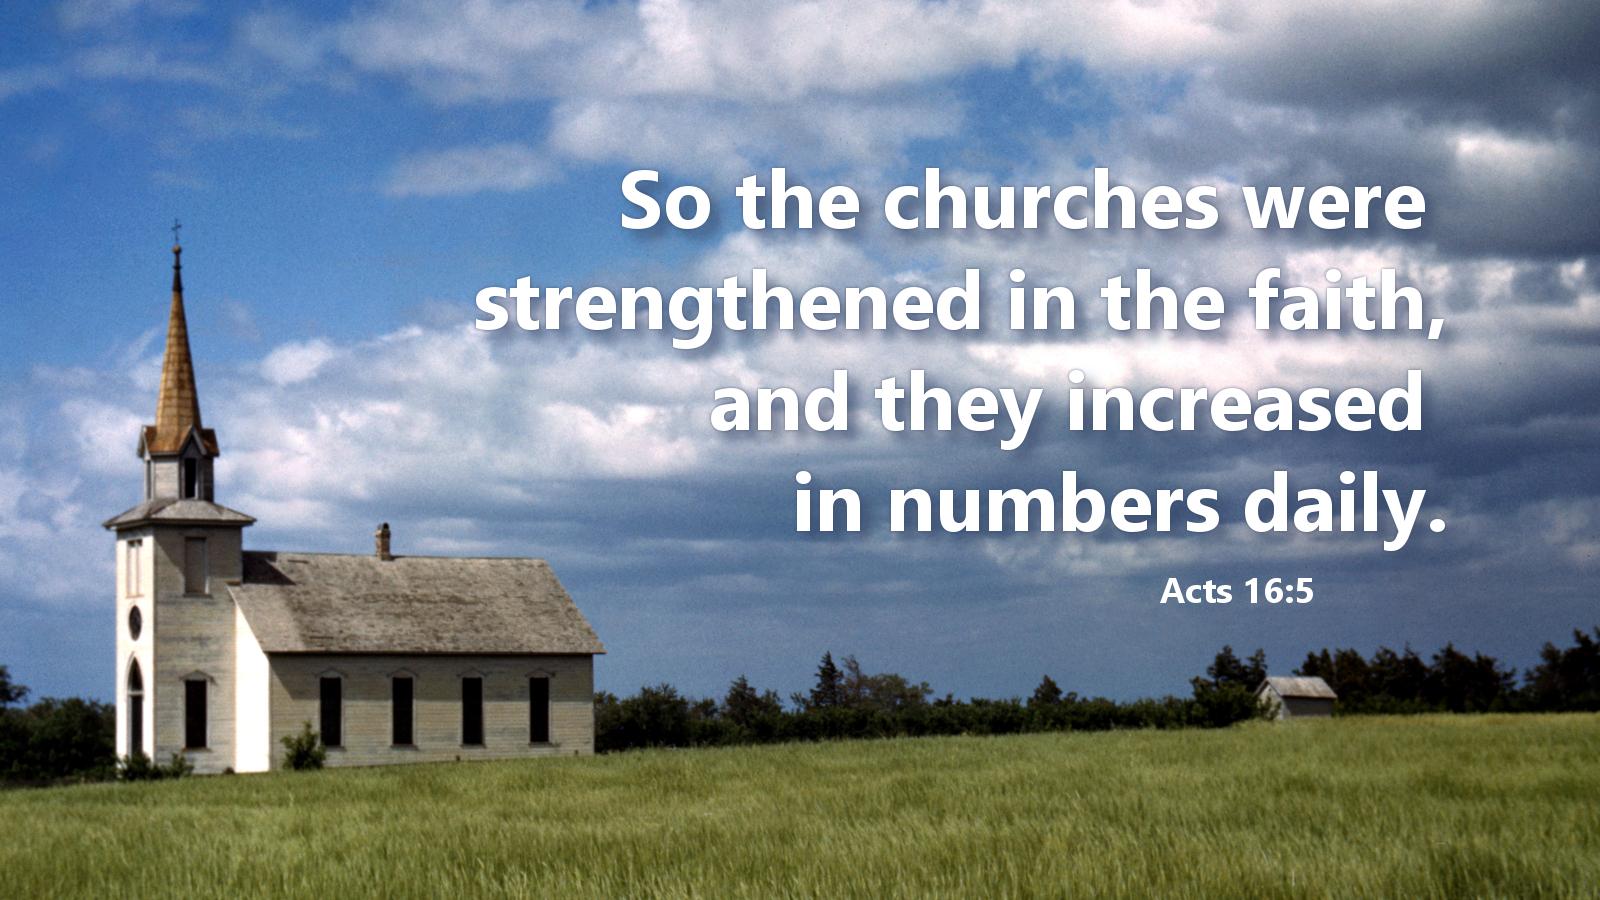 acts16-5